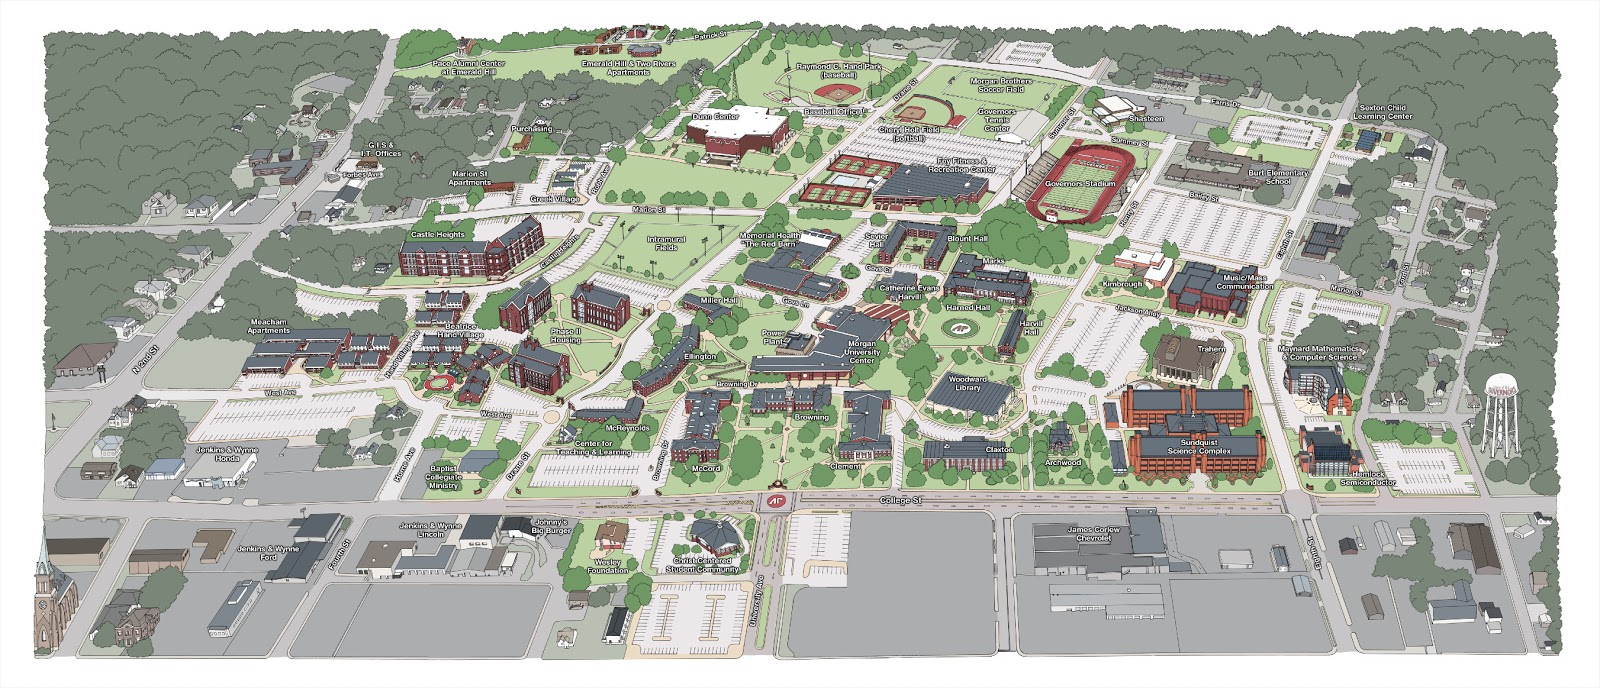 St Catherine University Campus Map.2012 Apsu Campus Map Holly Carden Illustrator